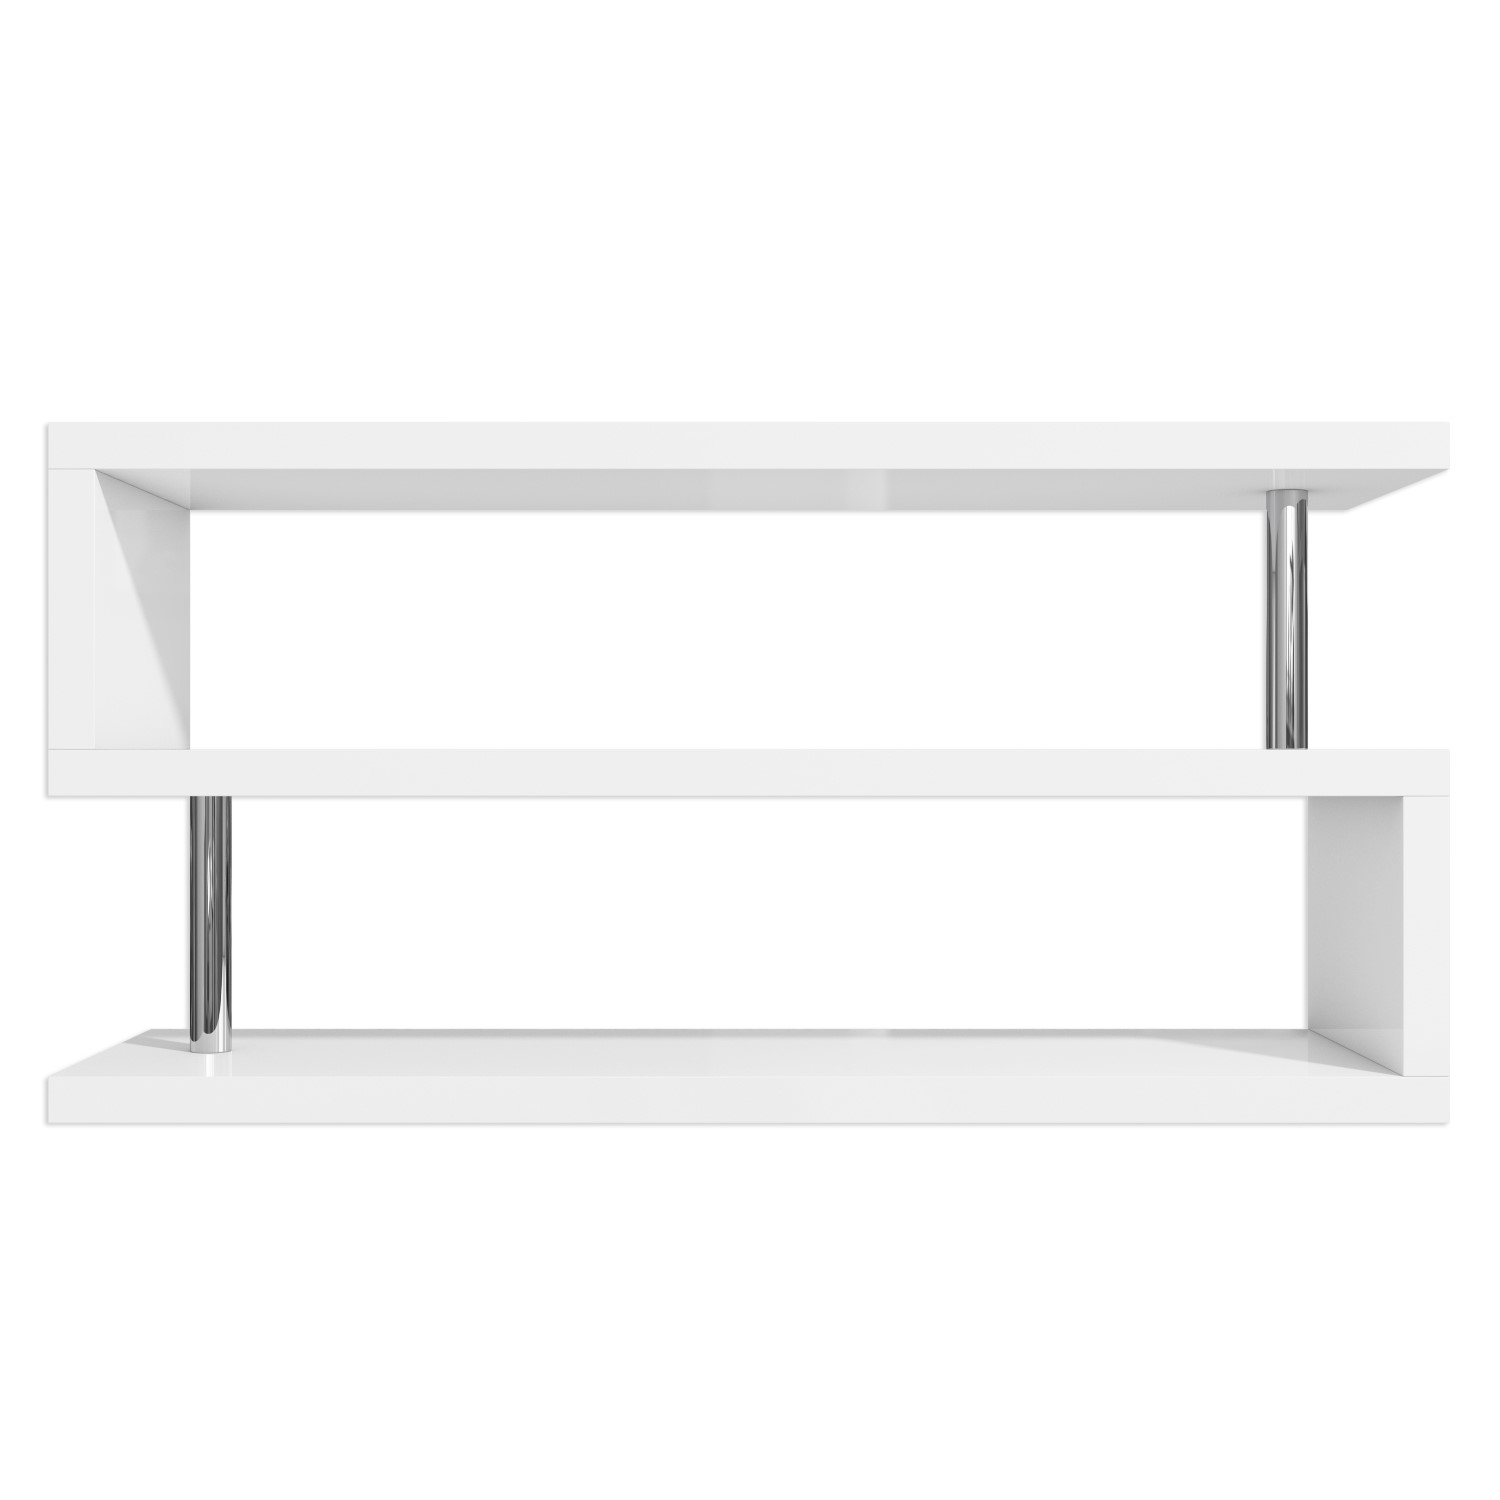 low priced a2a12 e81a3 Artemis White High Gloss Geometric TV Stand - TV's up to 50